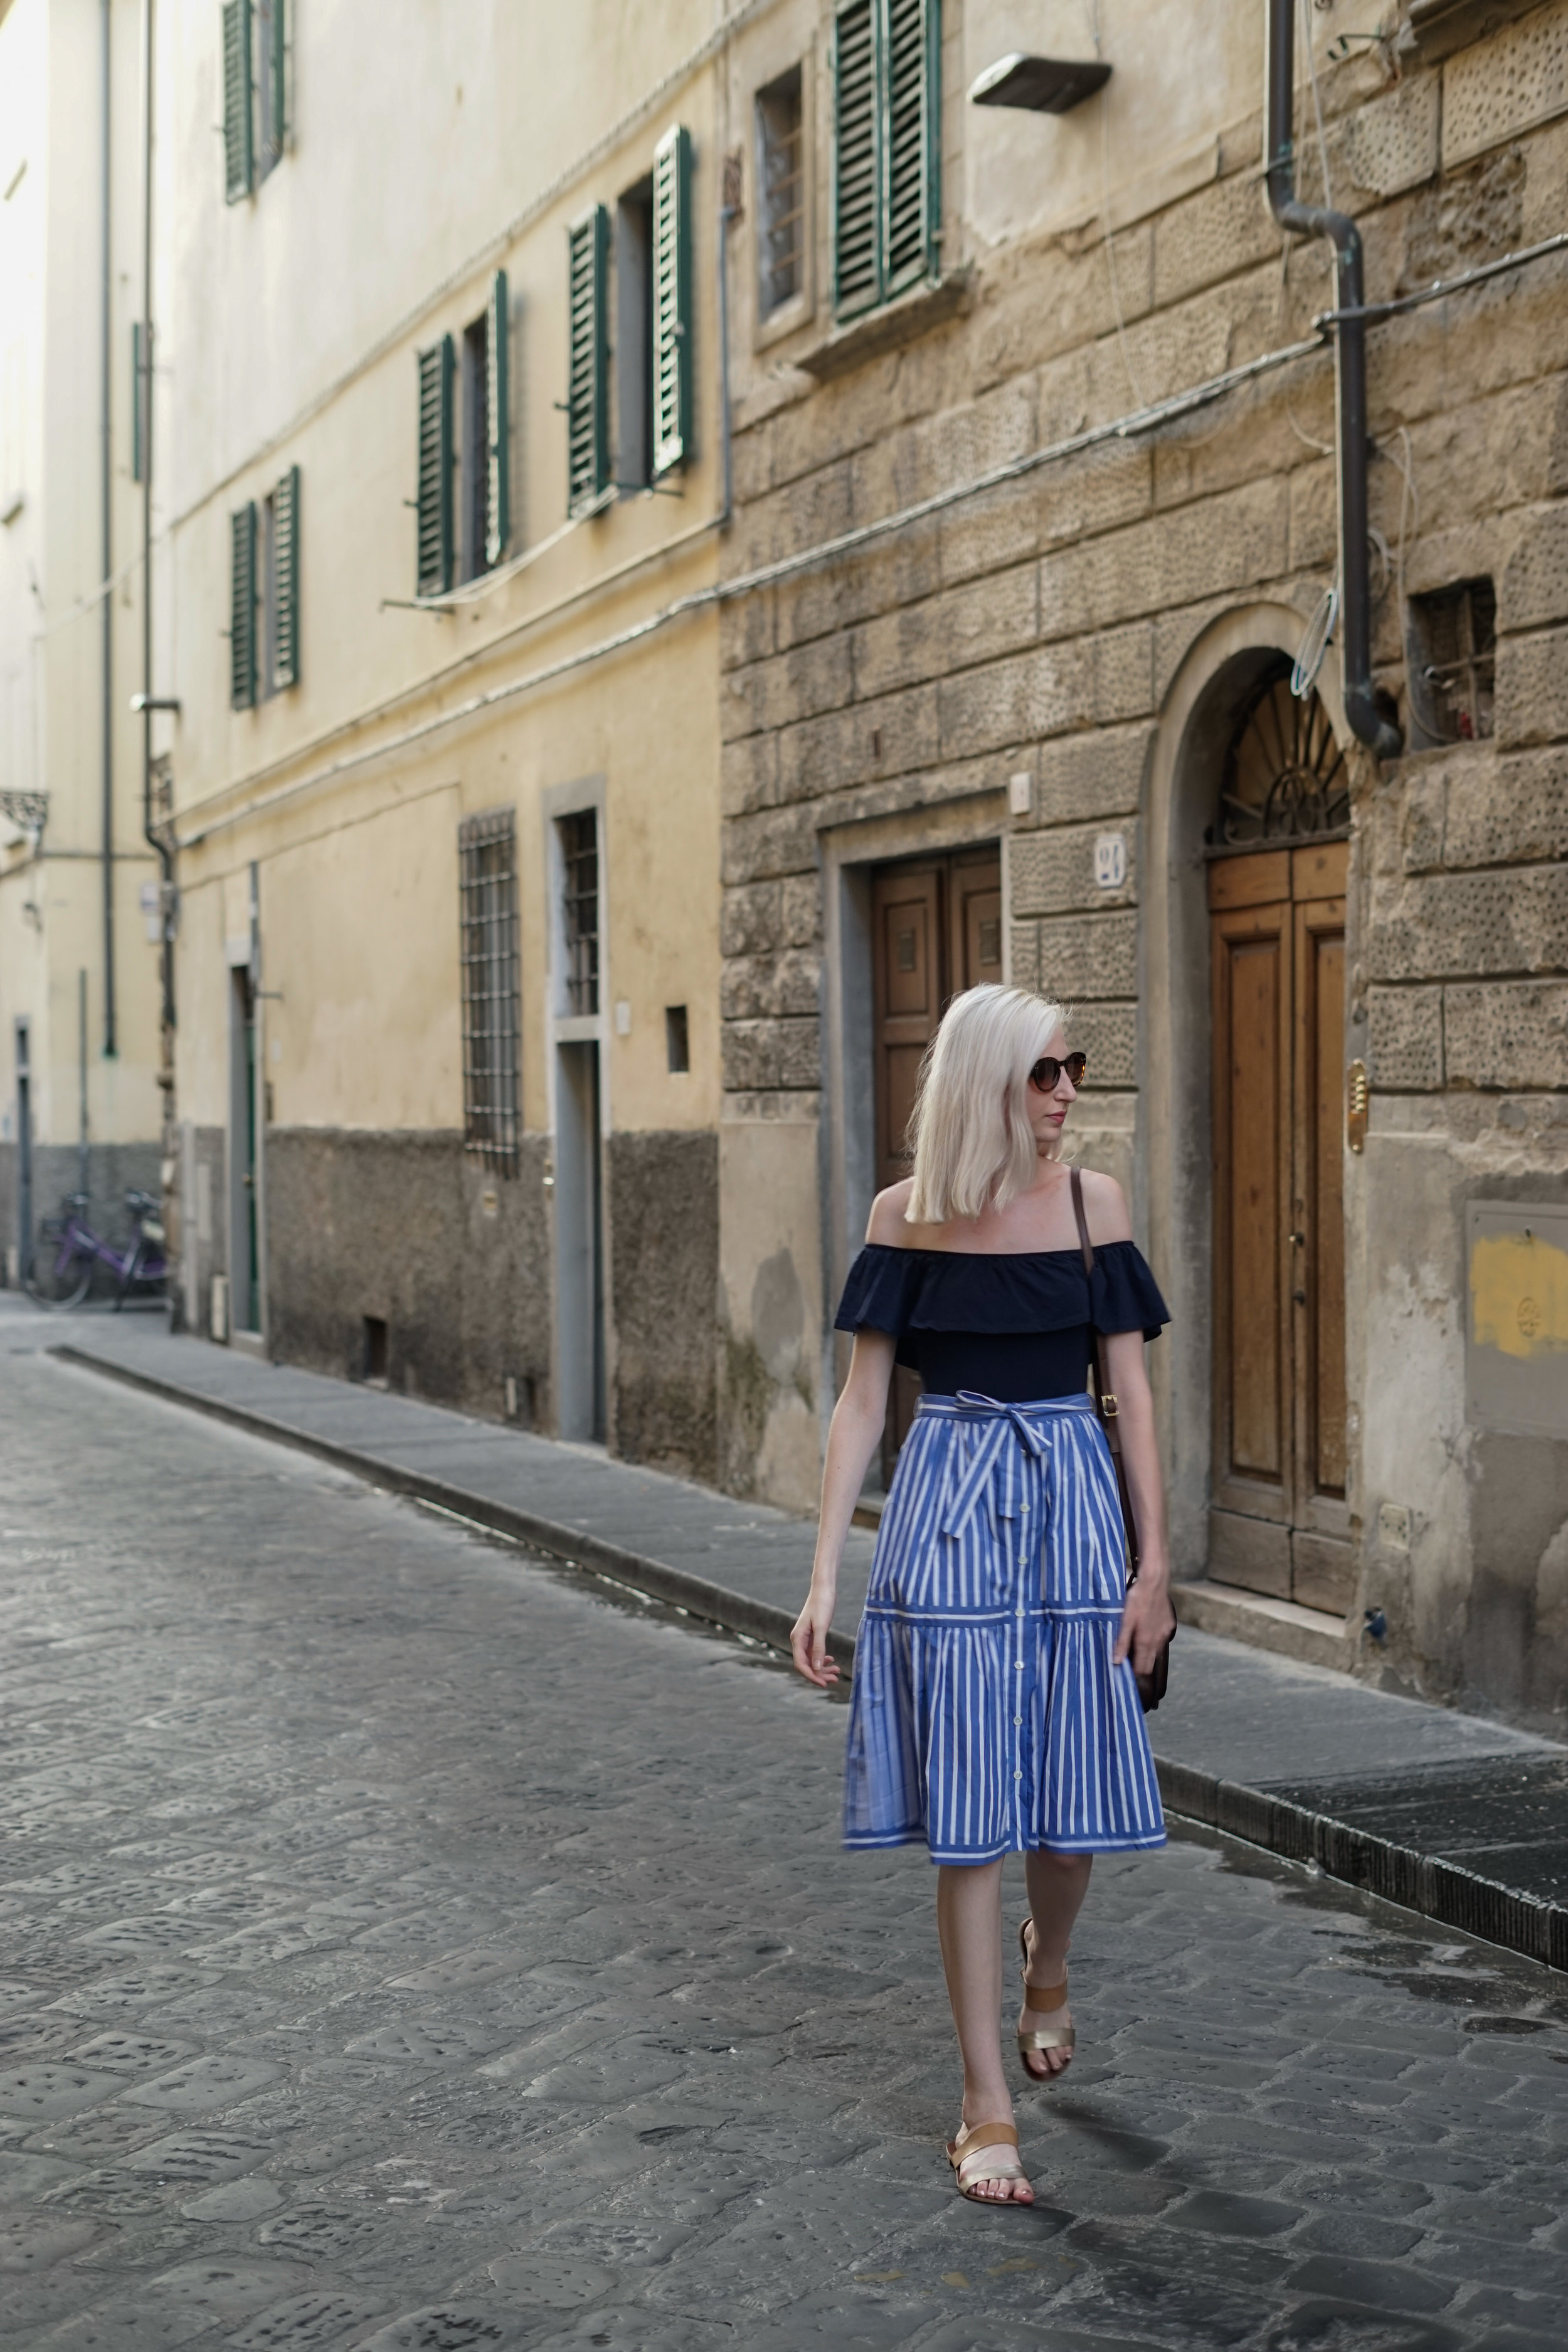 FIT Florence Italy, What to and not to bring when studying abroad, packing for study abroad, polimoda florence